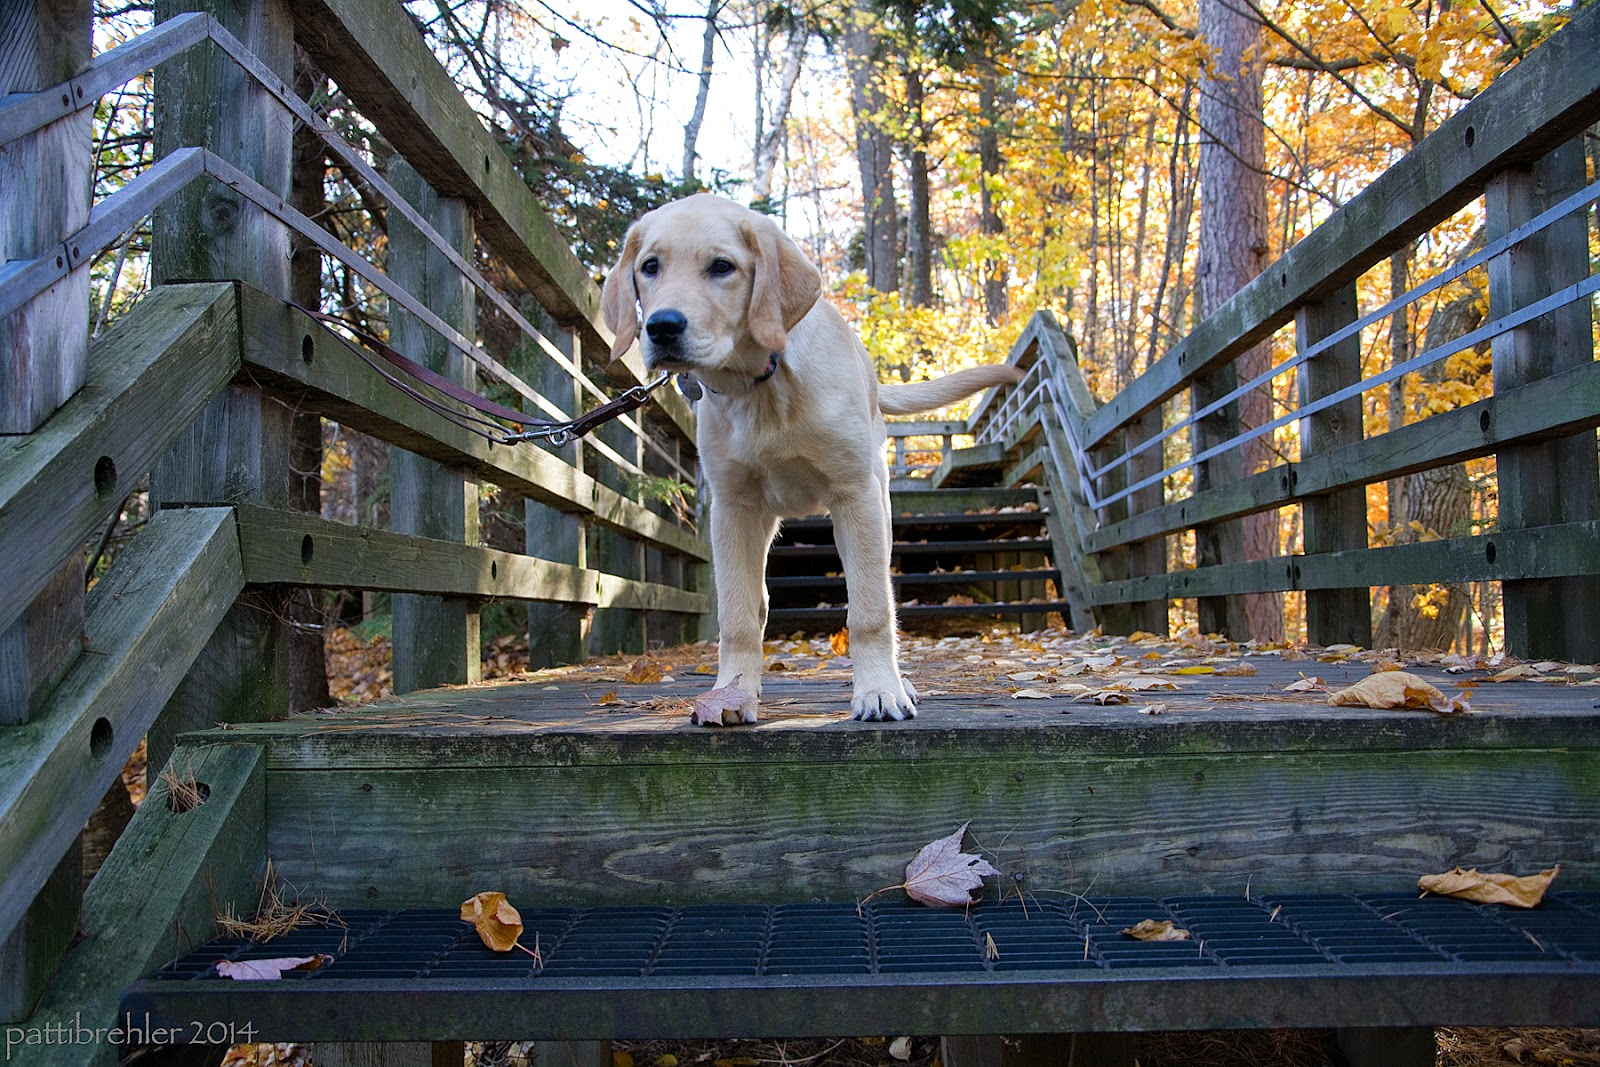 This shot is looking back up the wooden staircase. A small yellow lab/golden mix puppy is standing at the top of a flight looking at the camera. His leash is tied onto the railing.